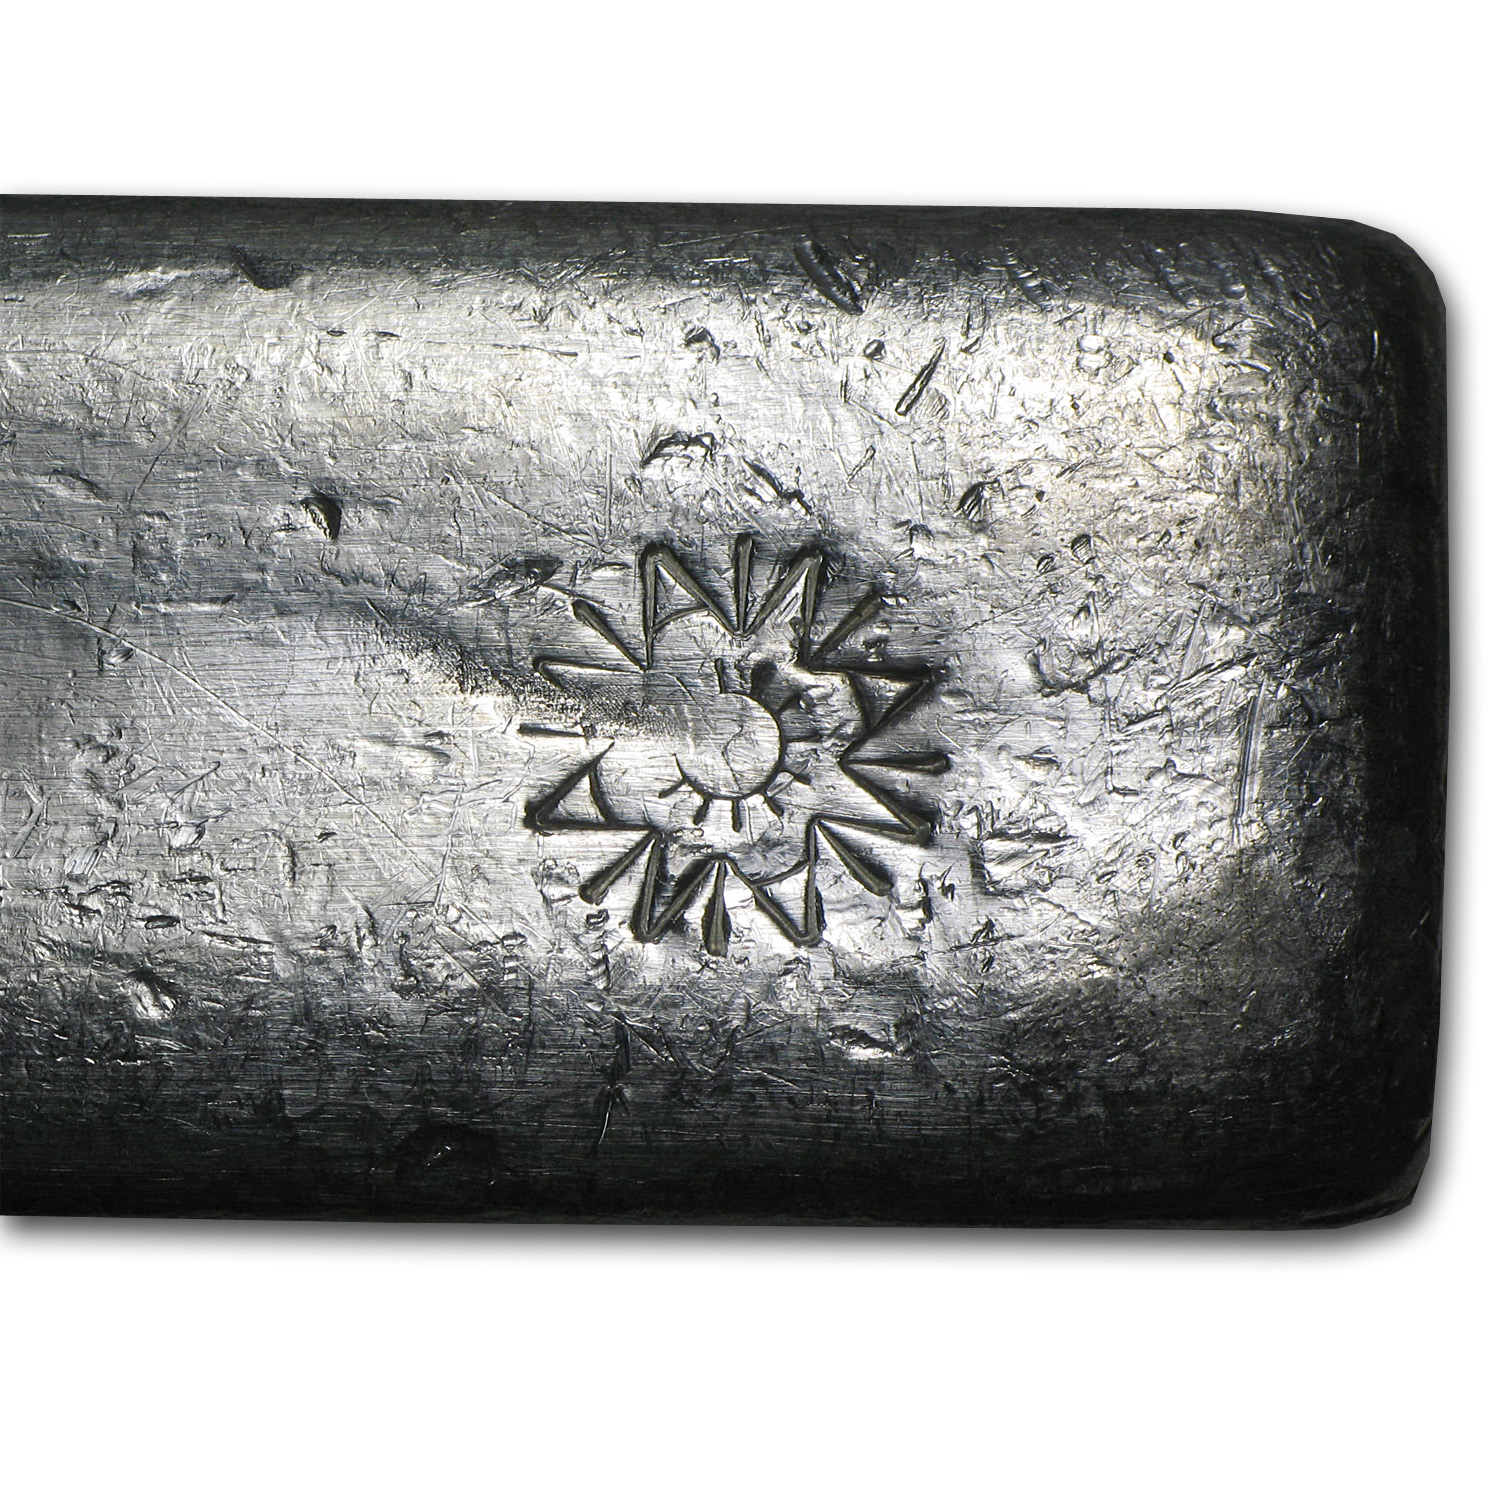 9.06 oz Silver Bar - A W Smelter